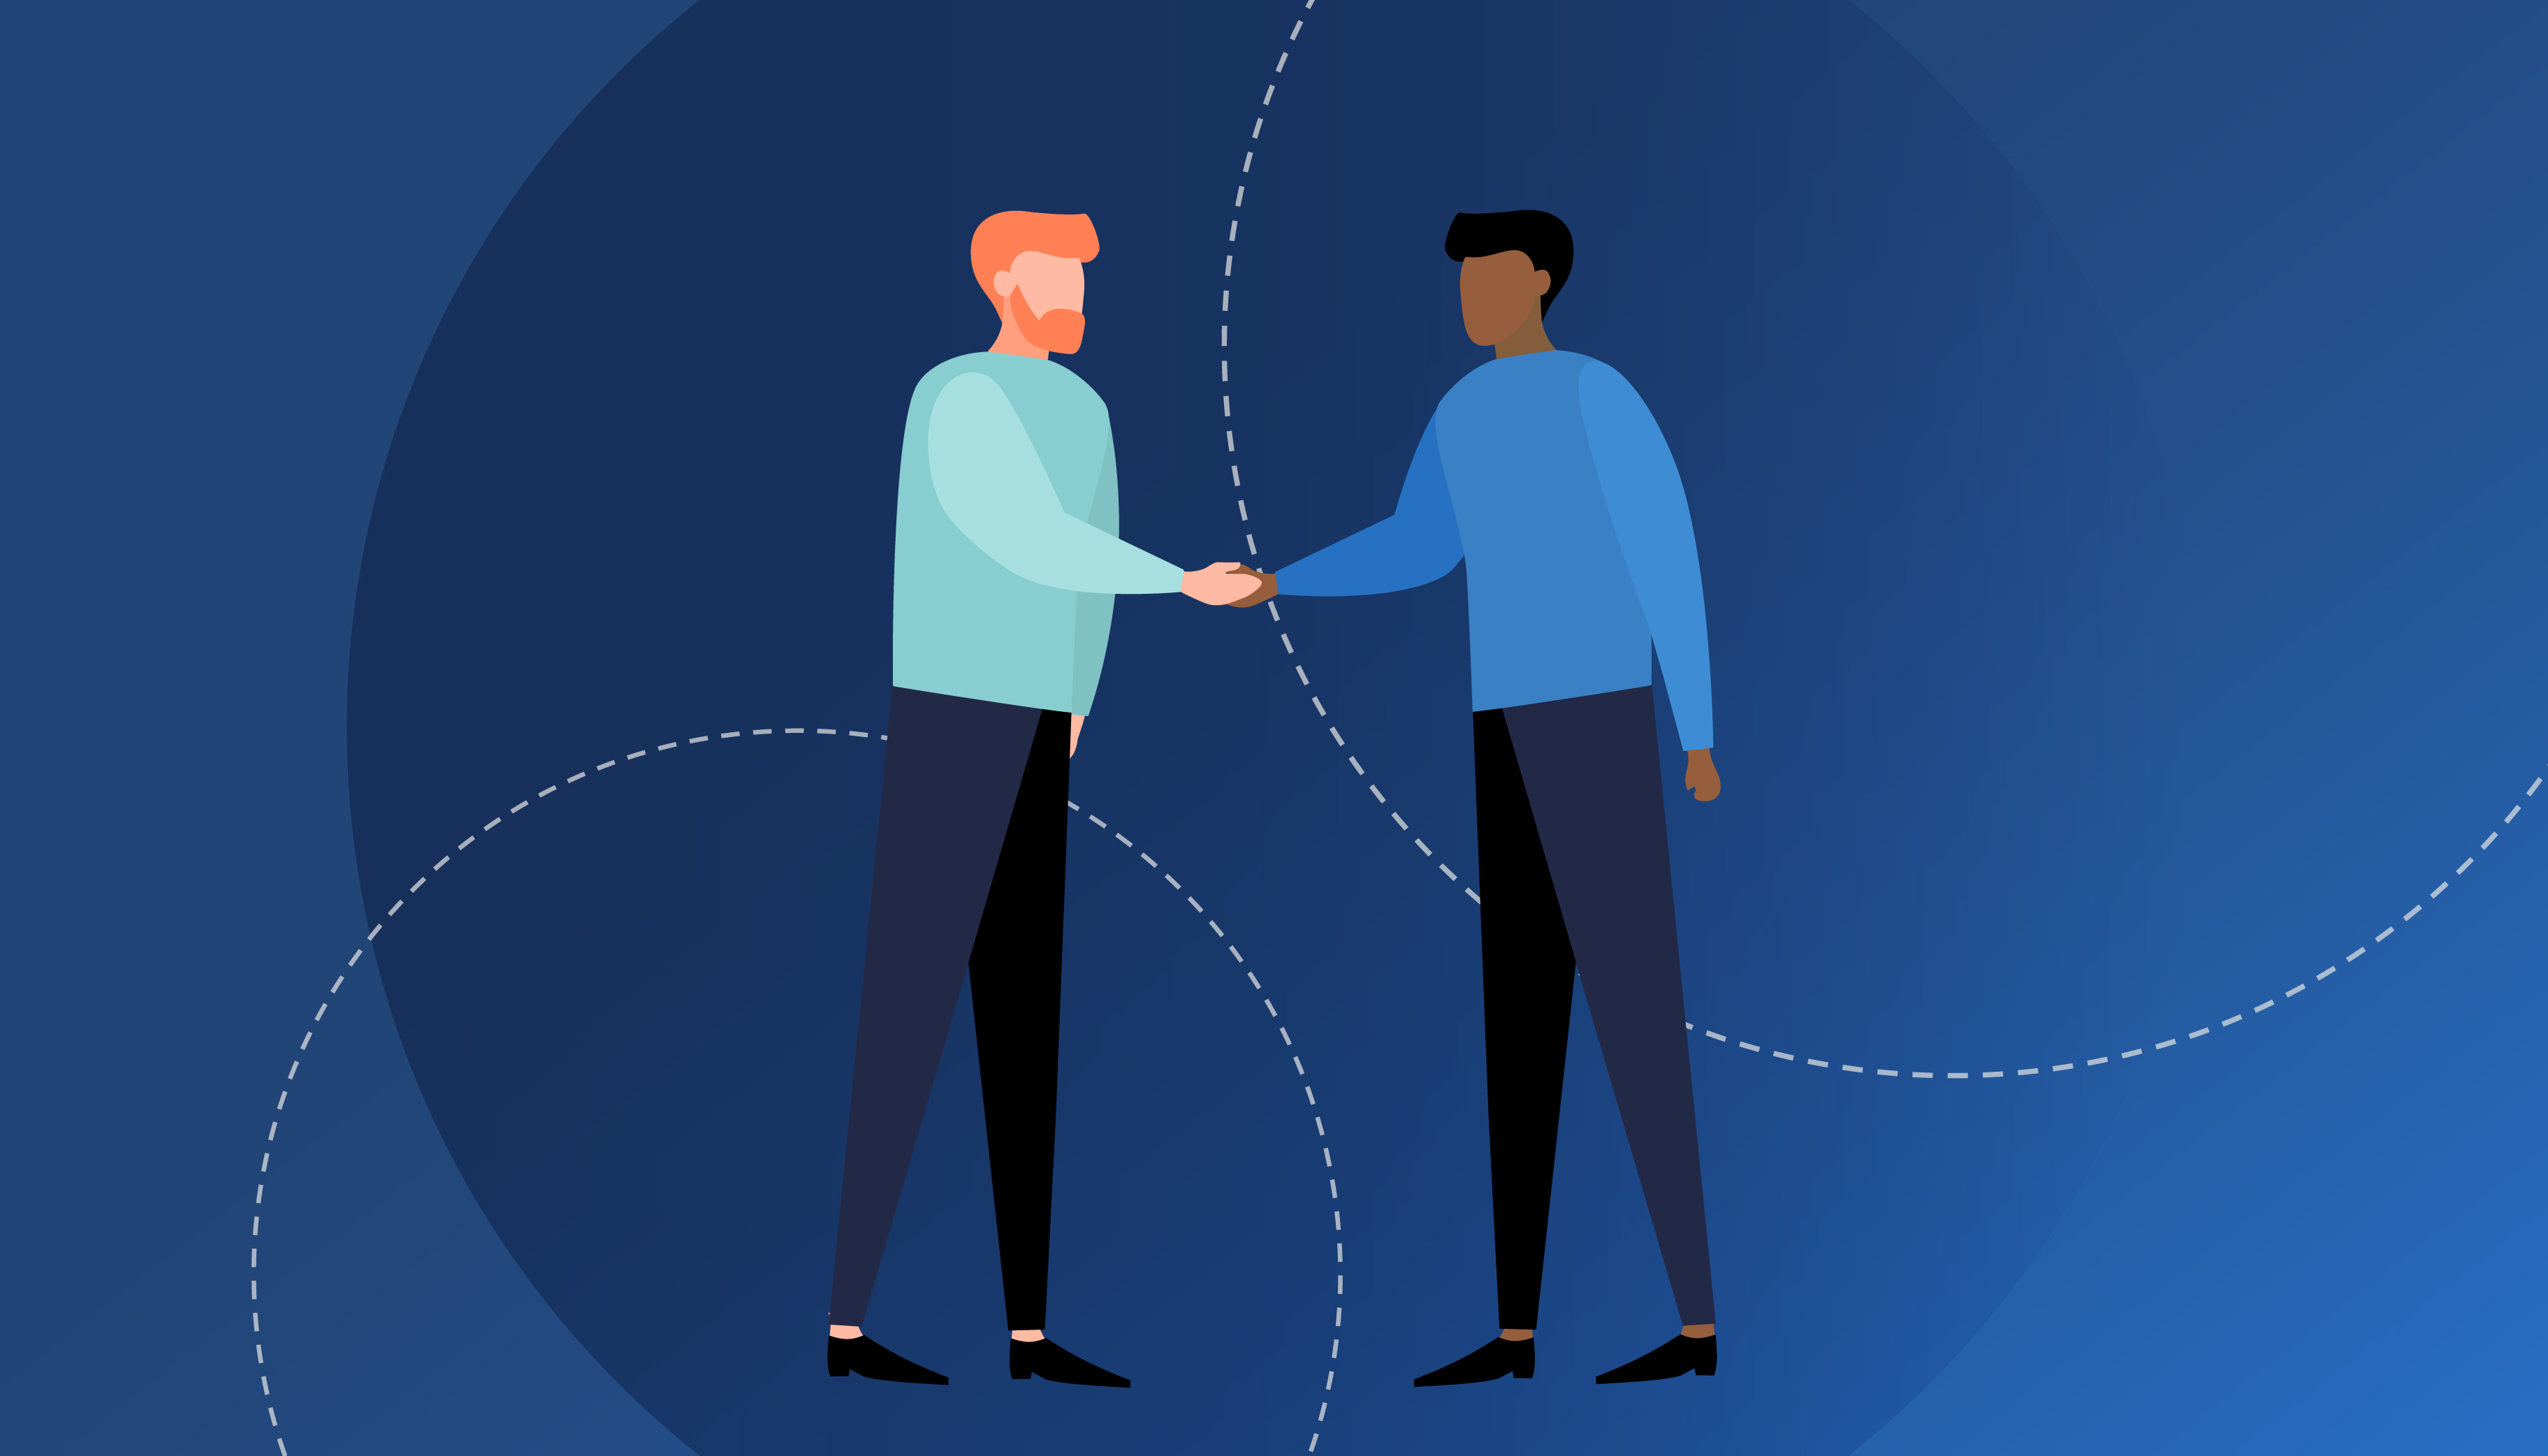 An illustration of two people shaking hands with illustrated white and blue circles in the background.